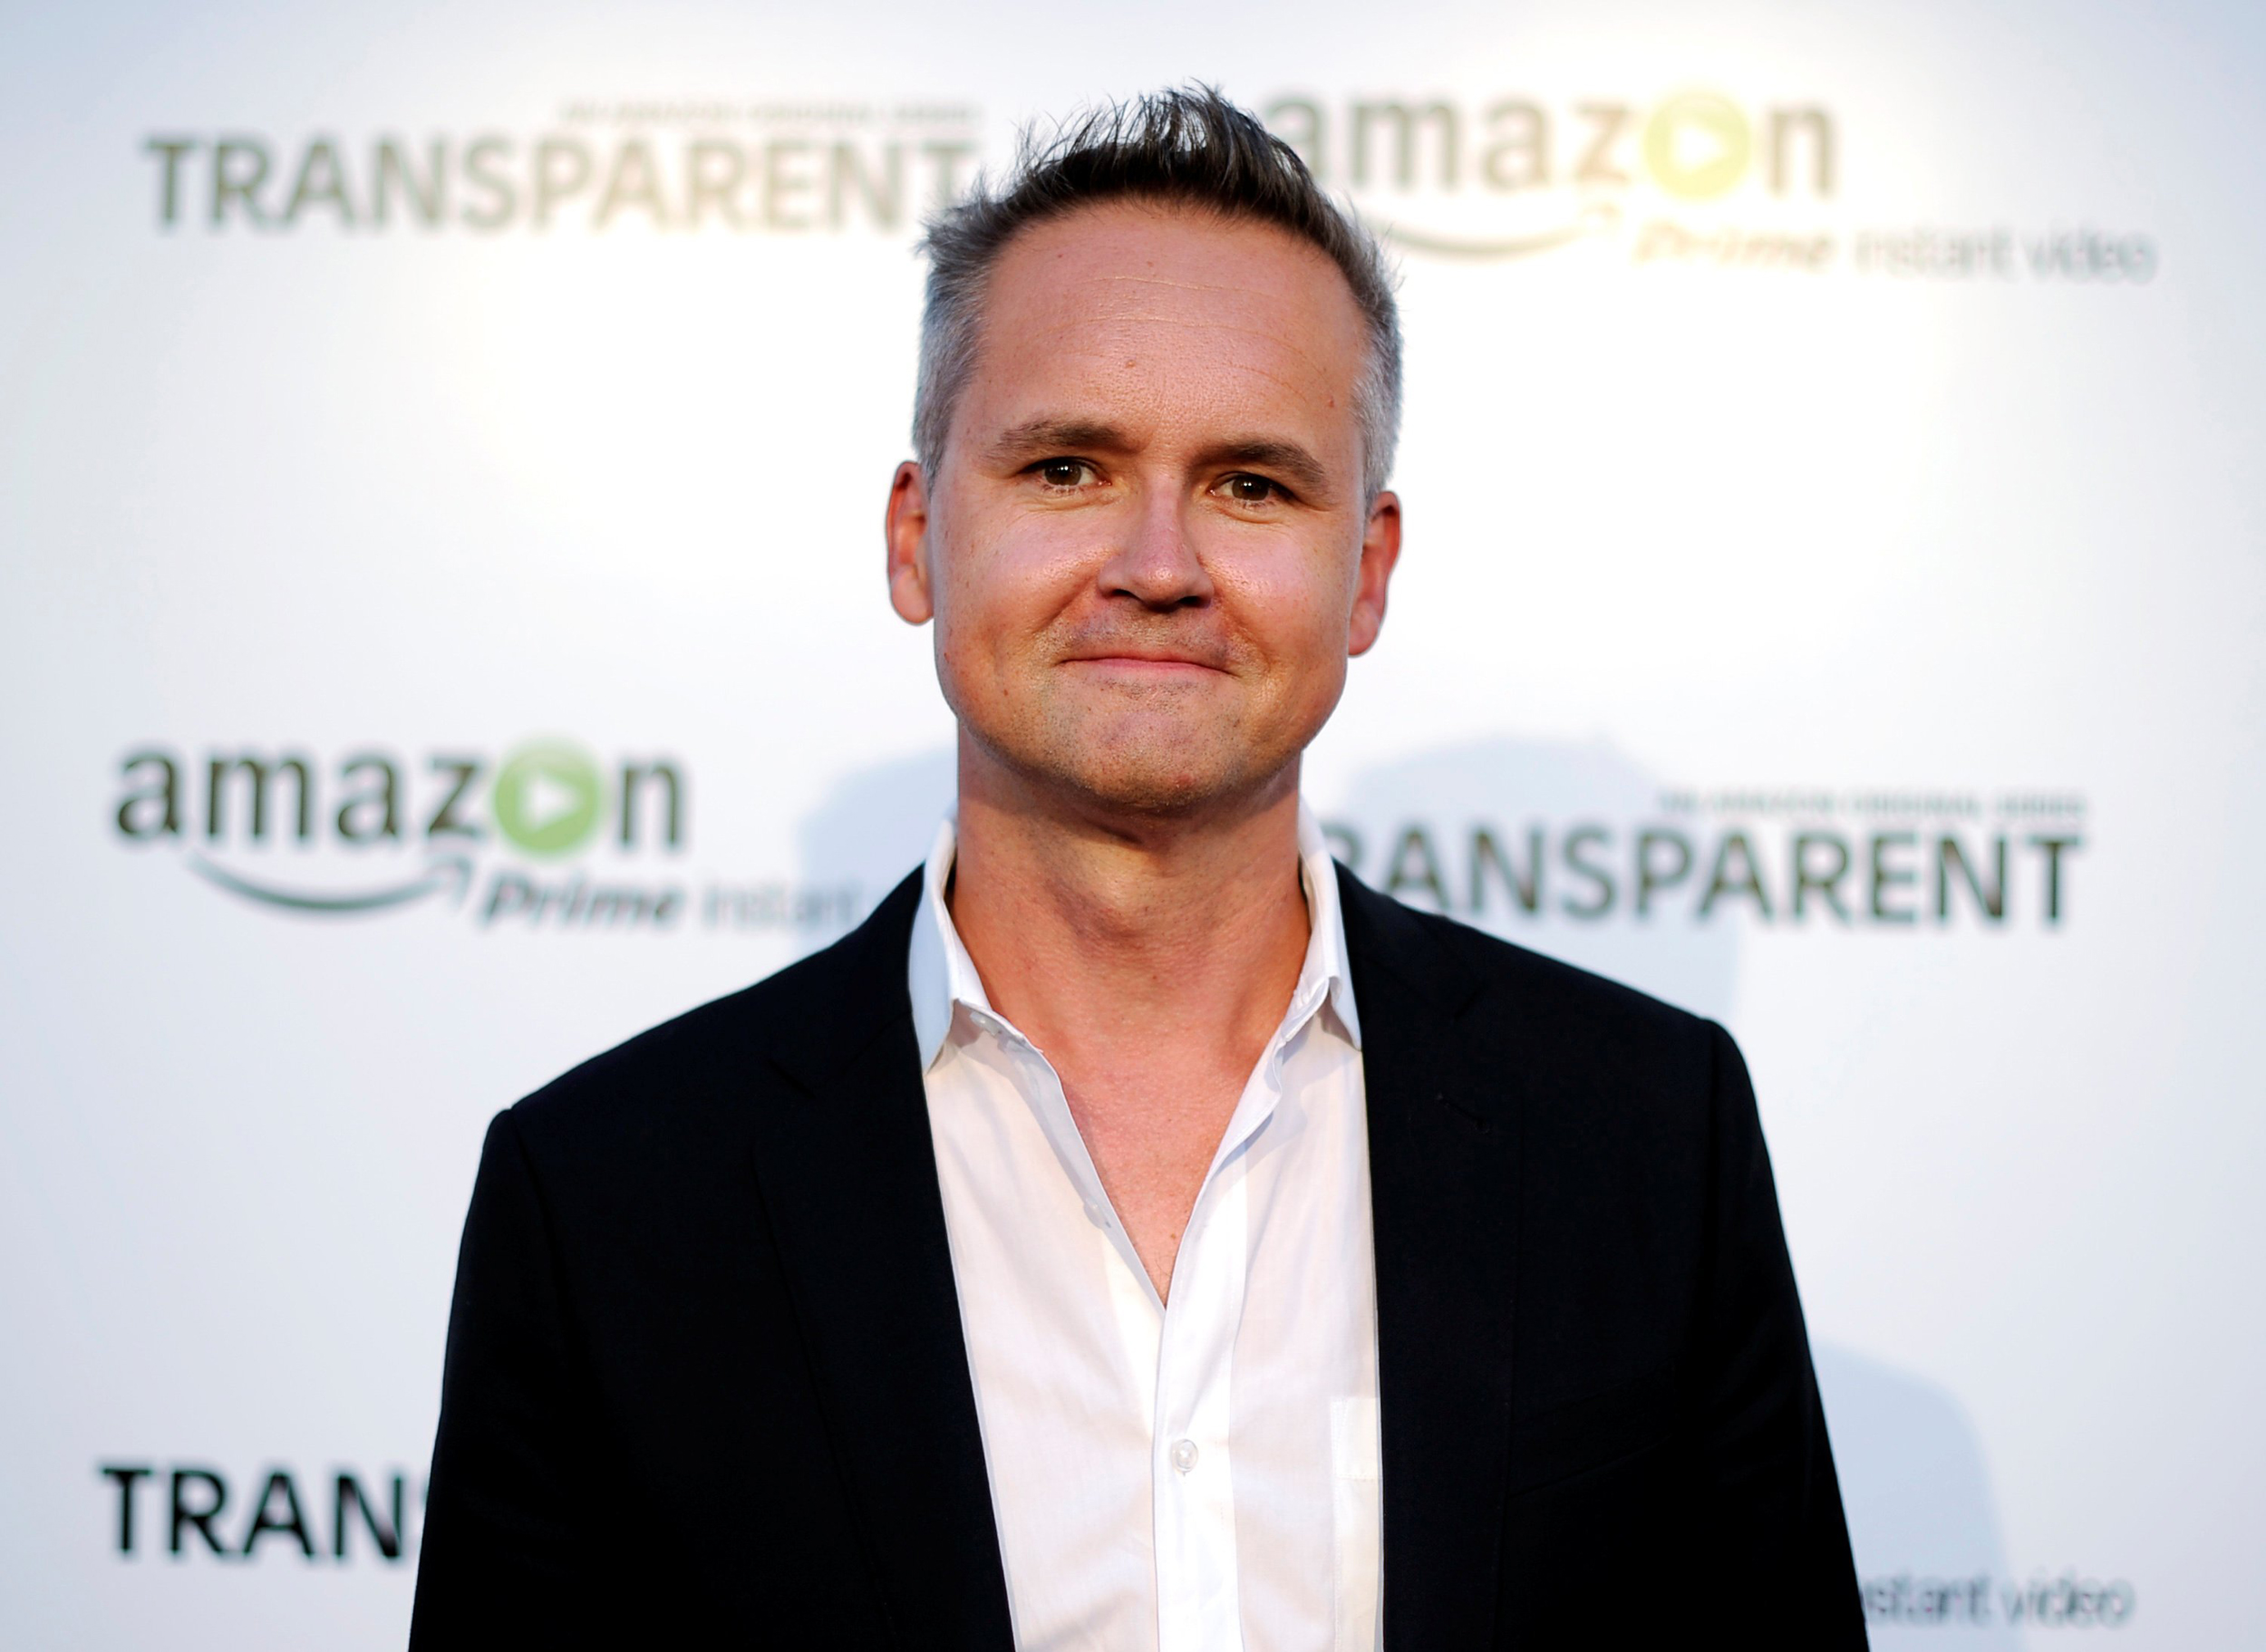 Image: Roy Price during Amazon's premiere screening of